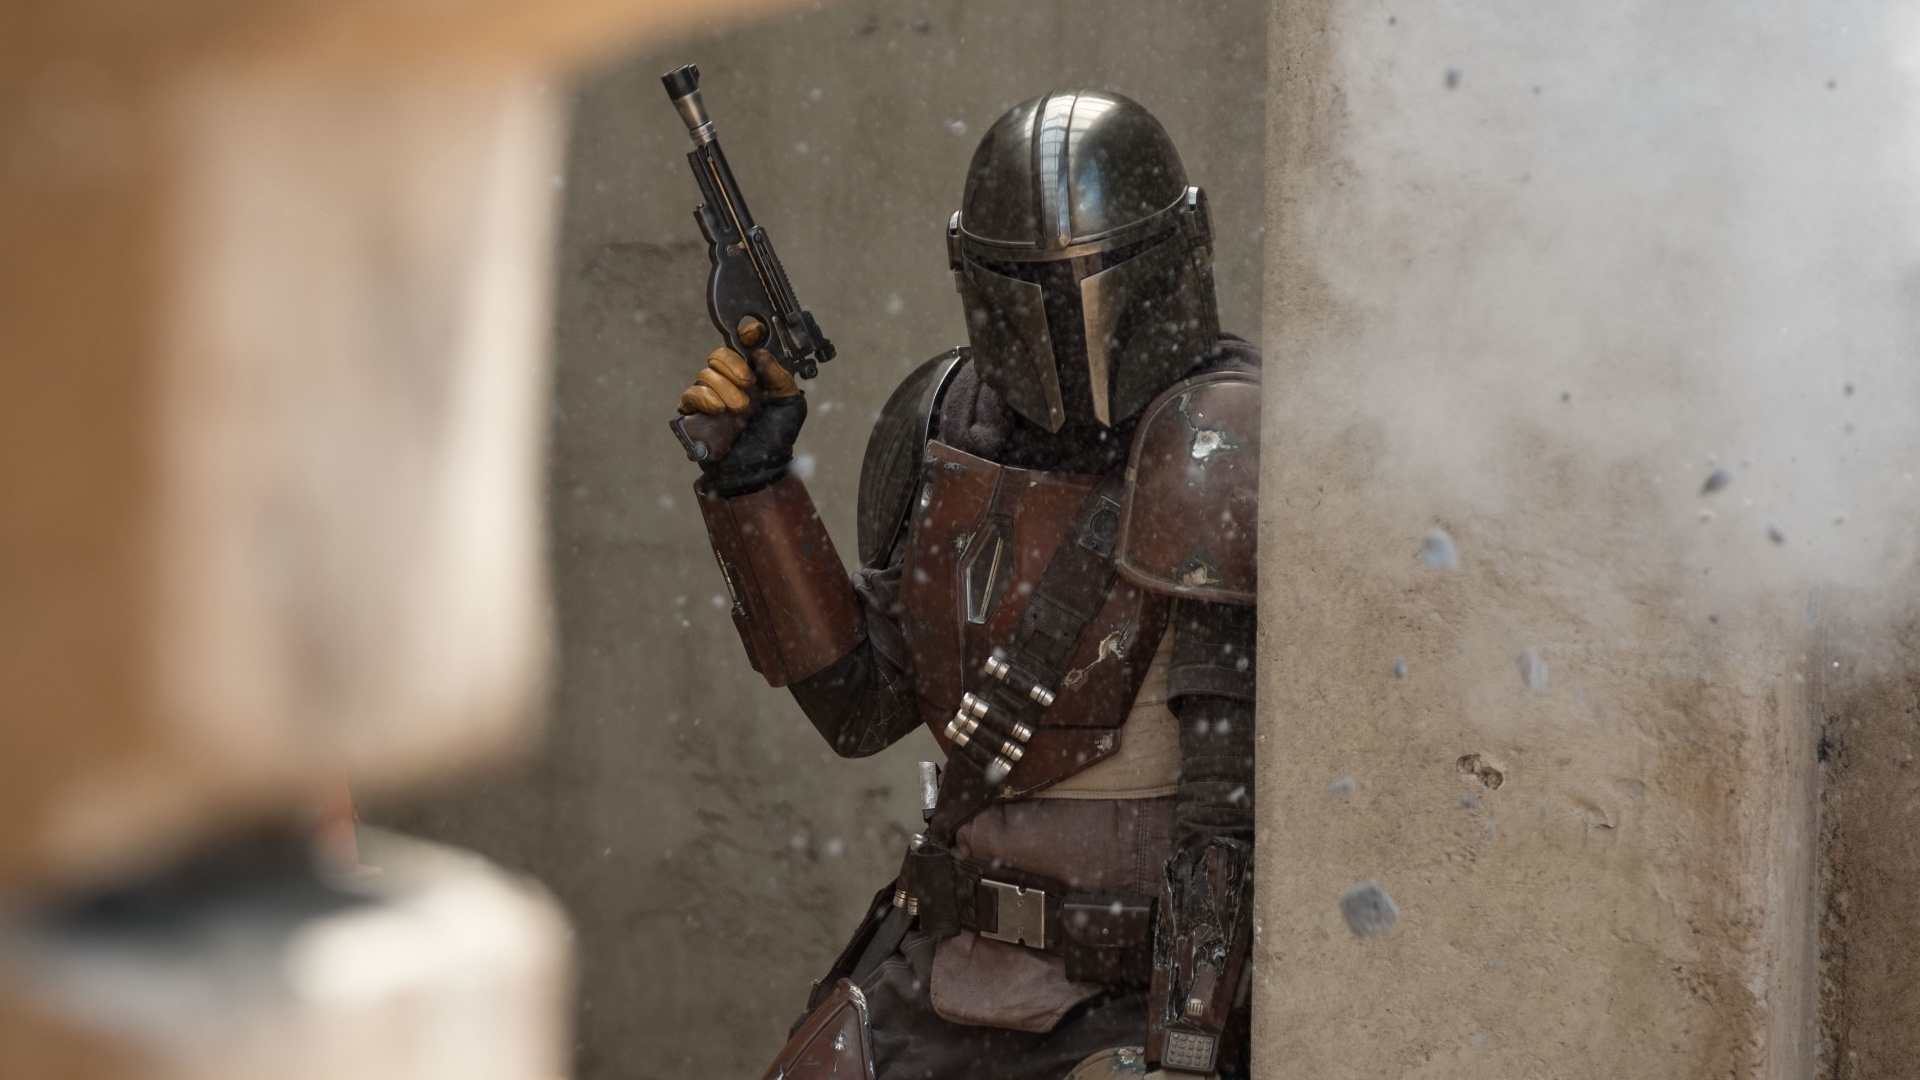 Here S What Jon Favreau And George Lucas Have Been Talking About For The Mandalorian